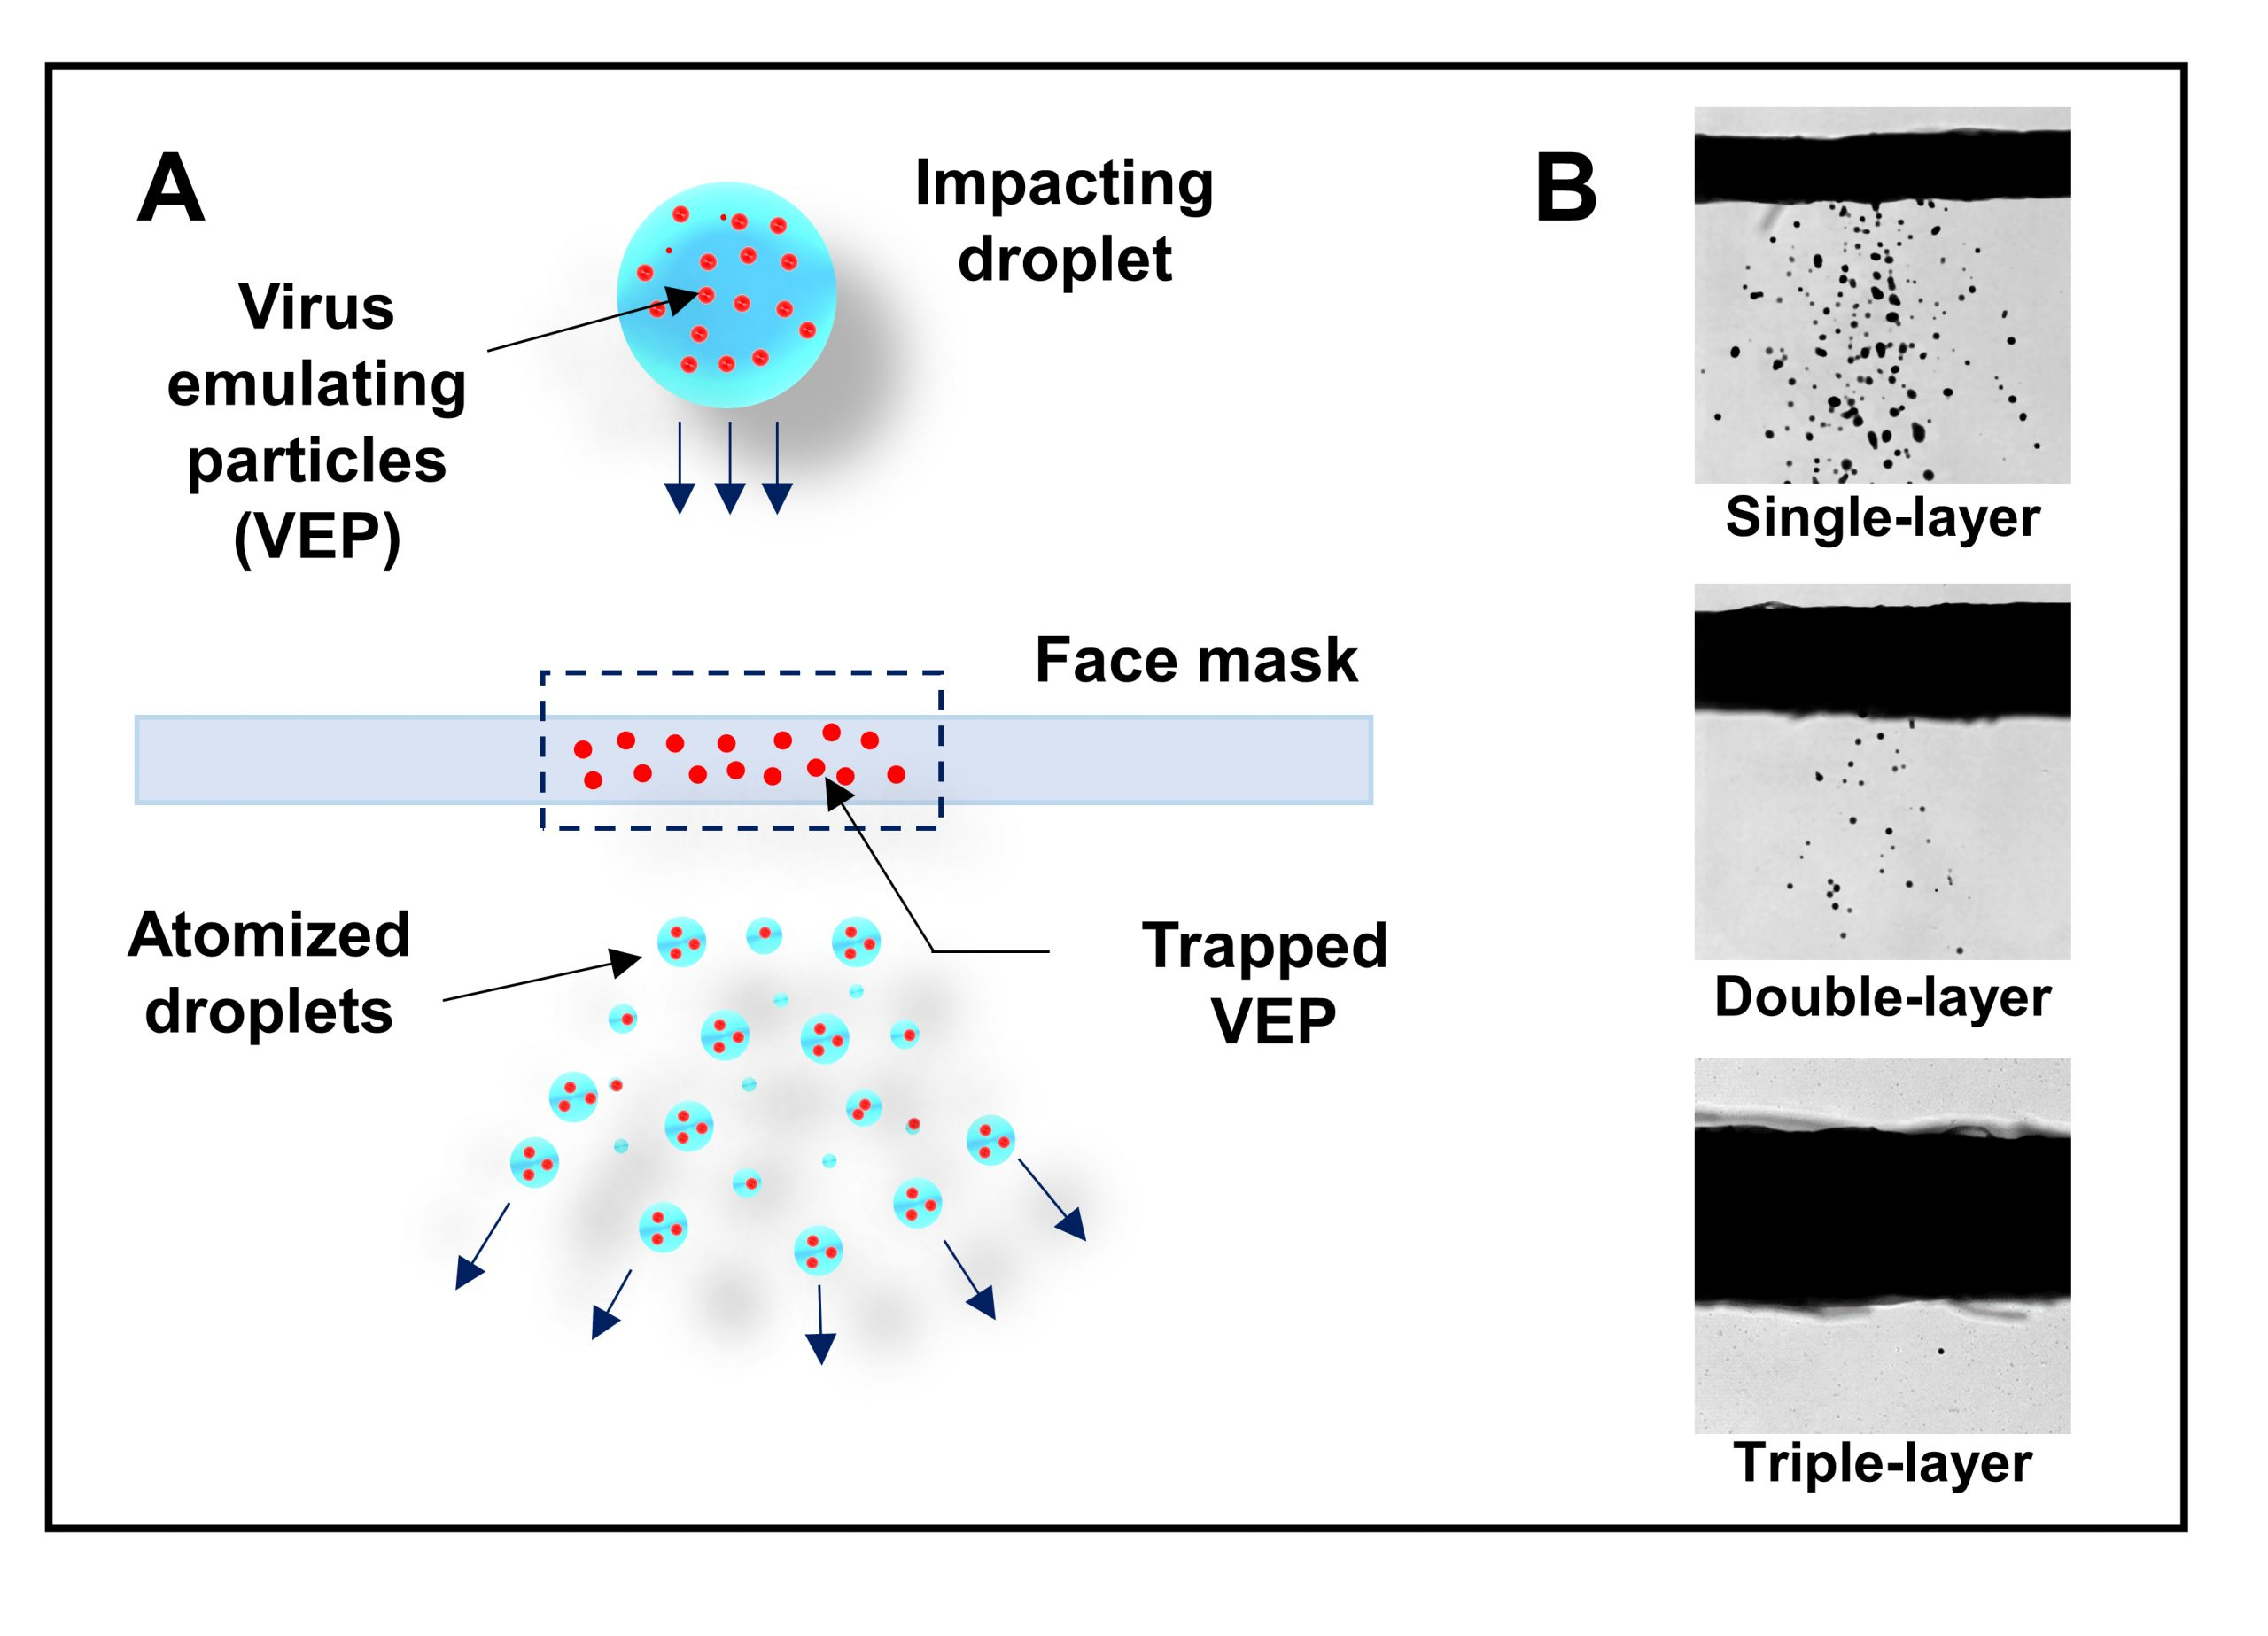 The diagram in A shows how larger, high-velocity liquid droplets can break up into smaller ones when they collide with mask material. The photographs in B demonstrate how double- and triple-layer masks prevent transmission of these secondary droplets. (Image: Shubham Sharma and Roven Pinto)